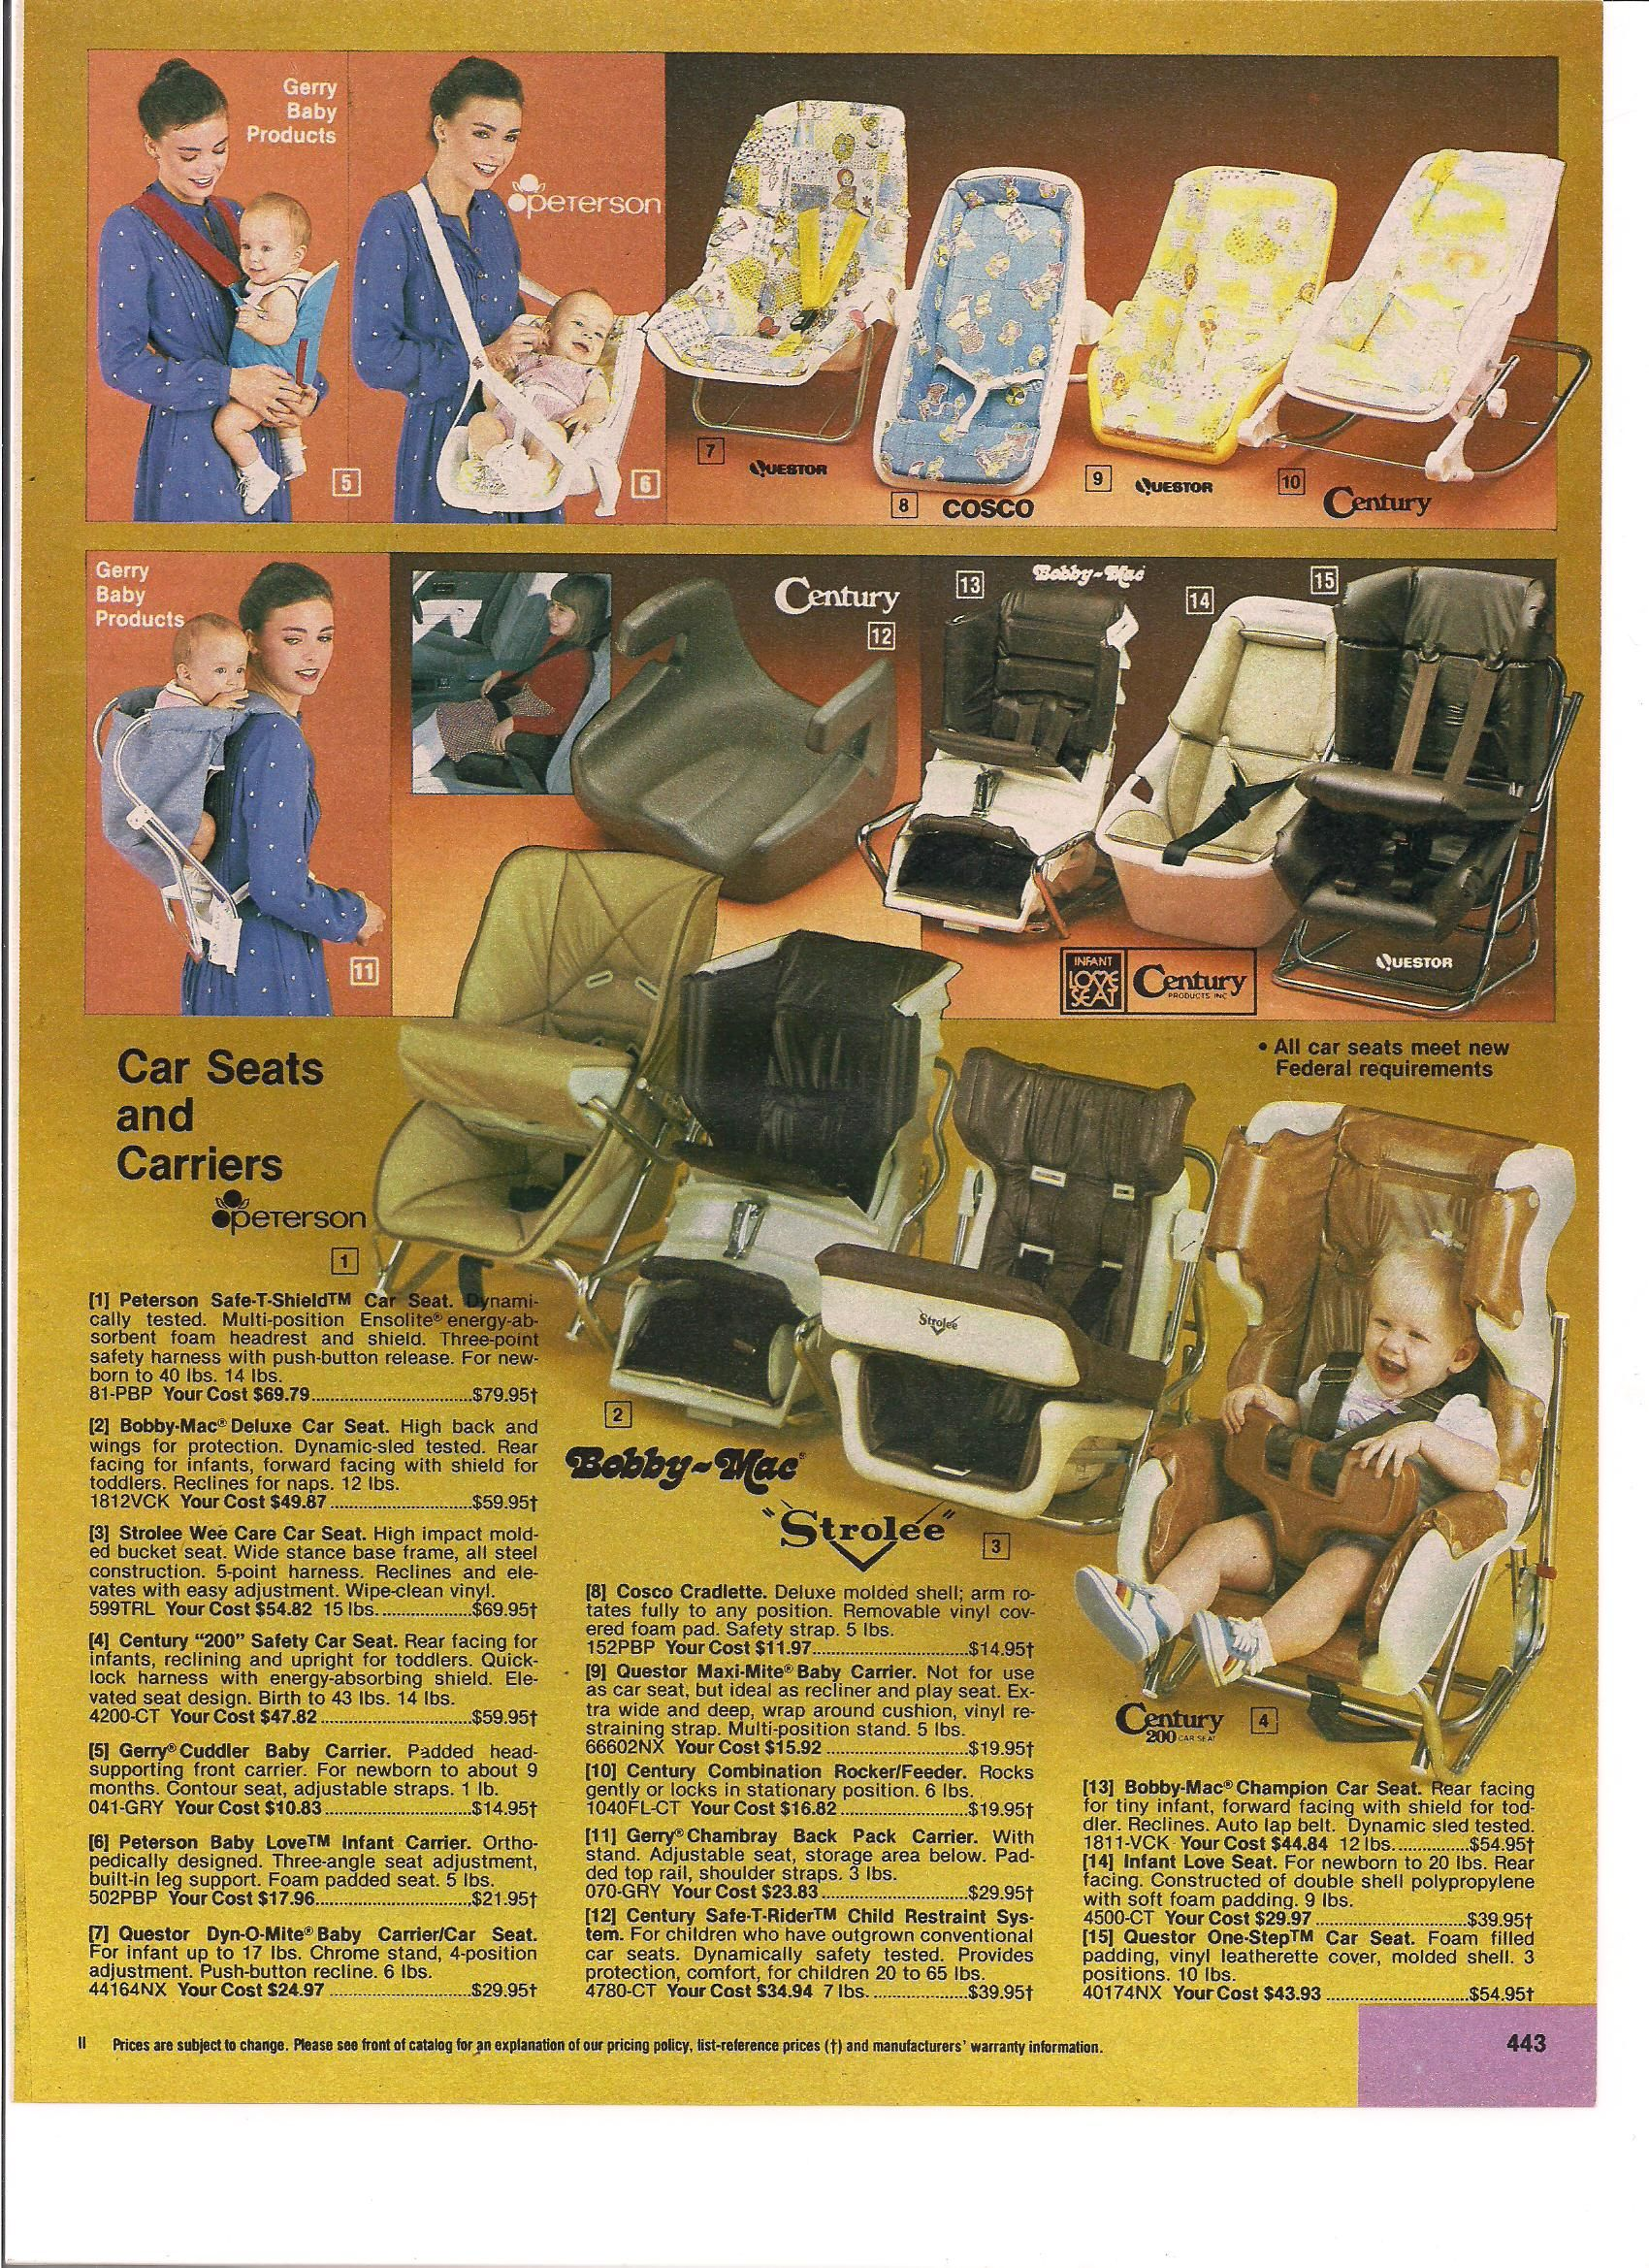 Service Merchandise 198182 I came home forward facing in